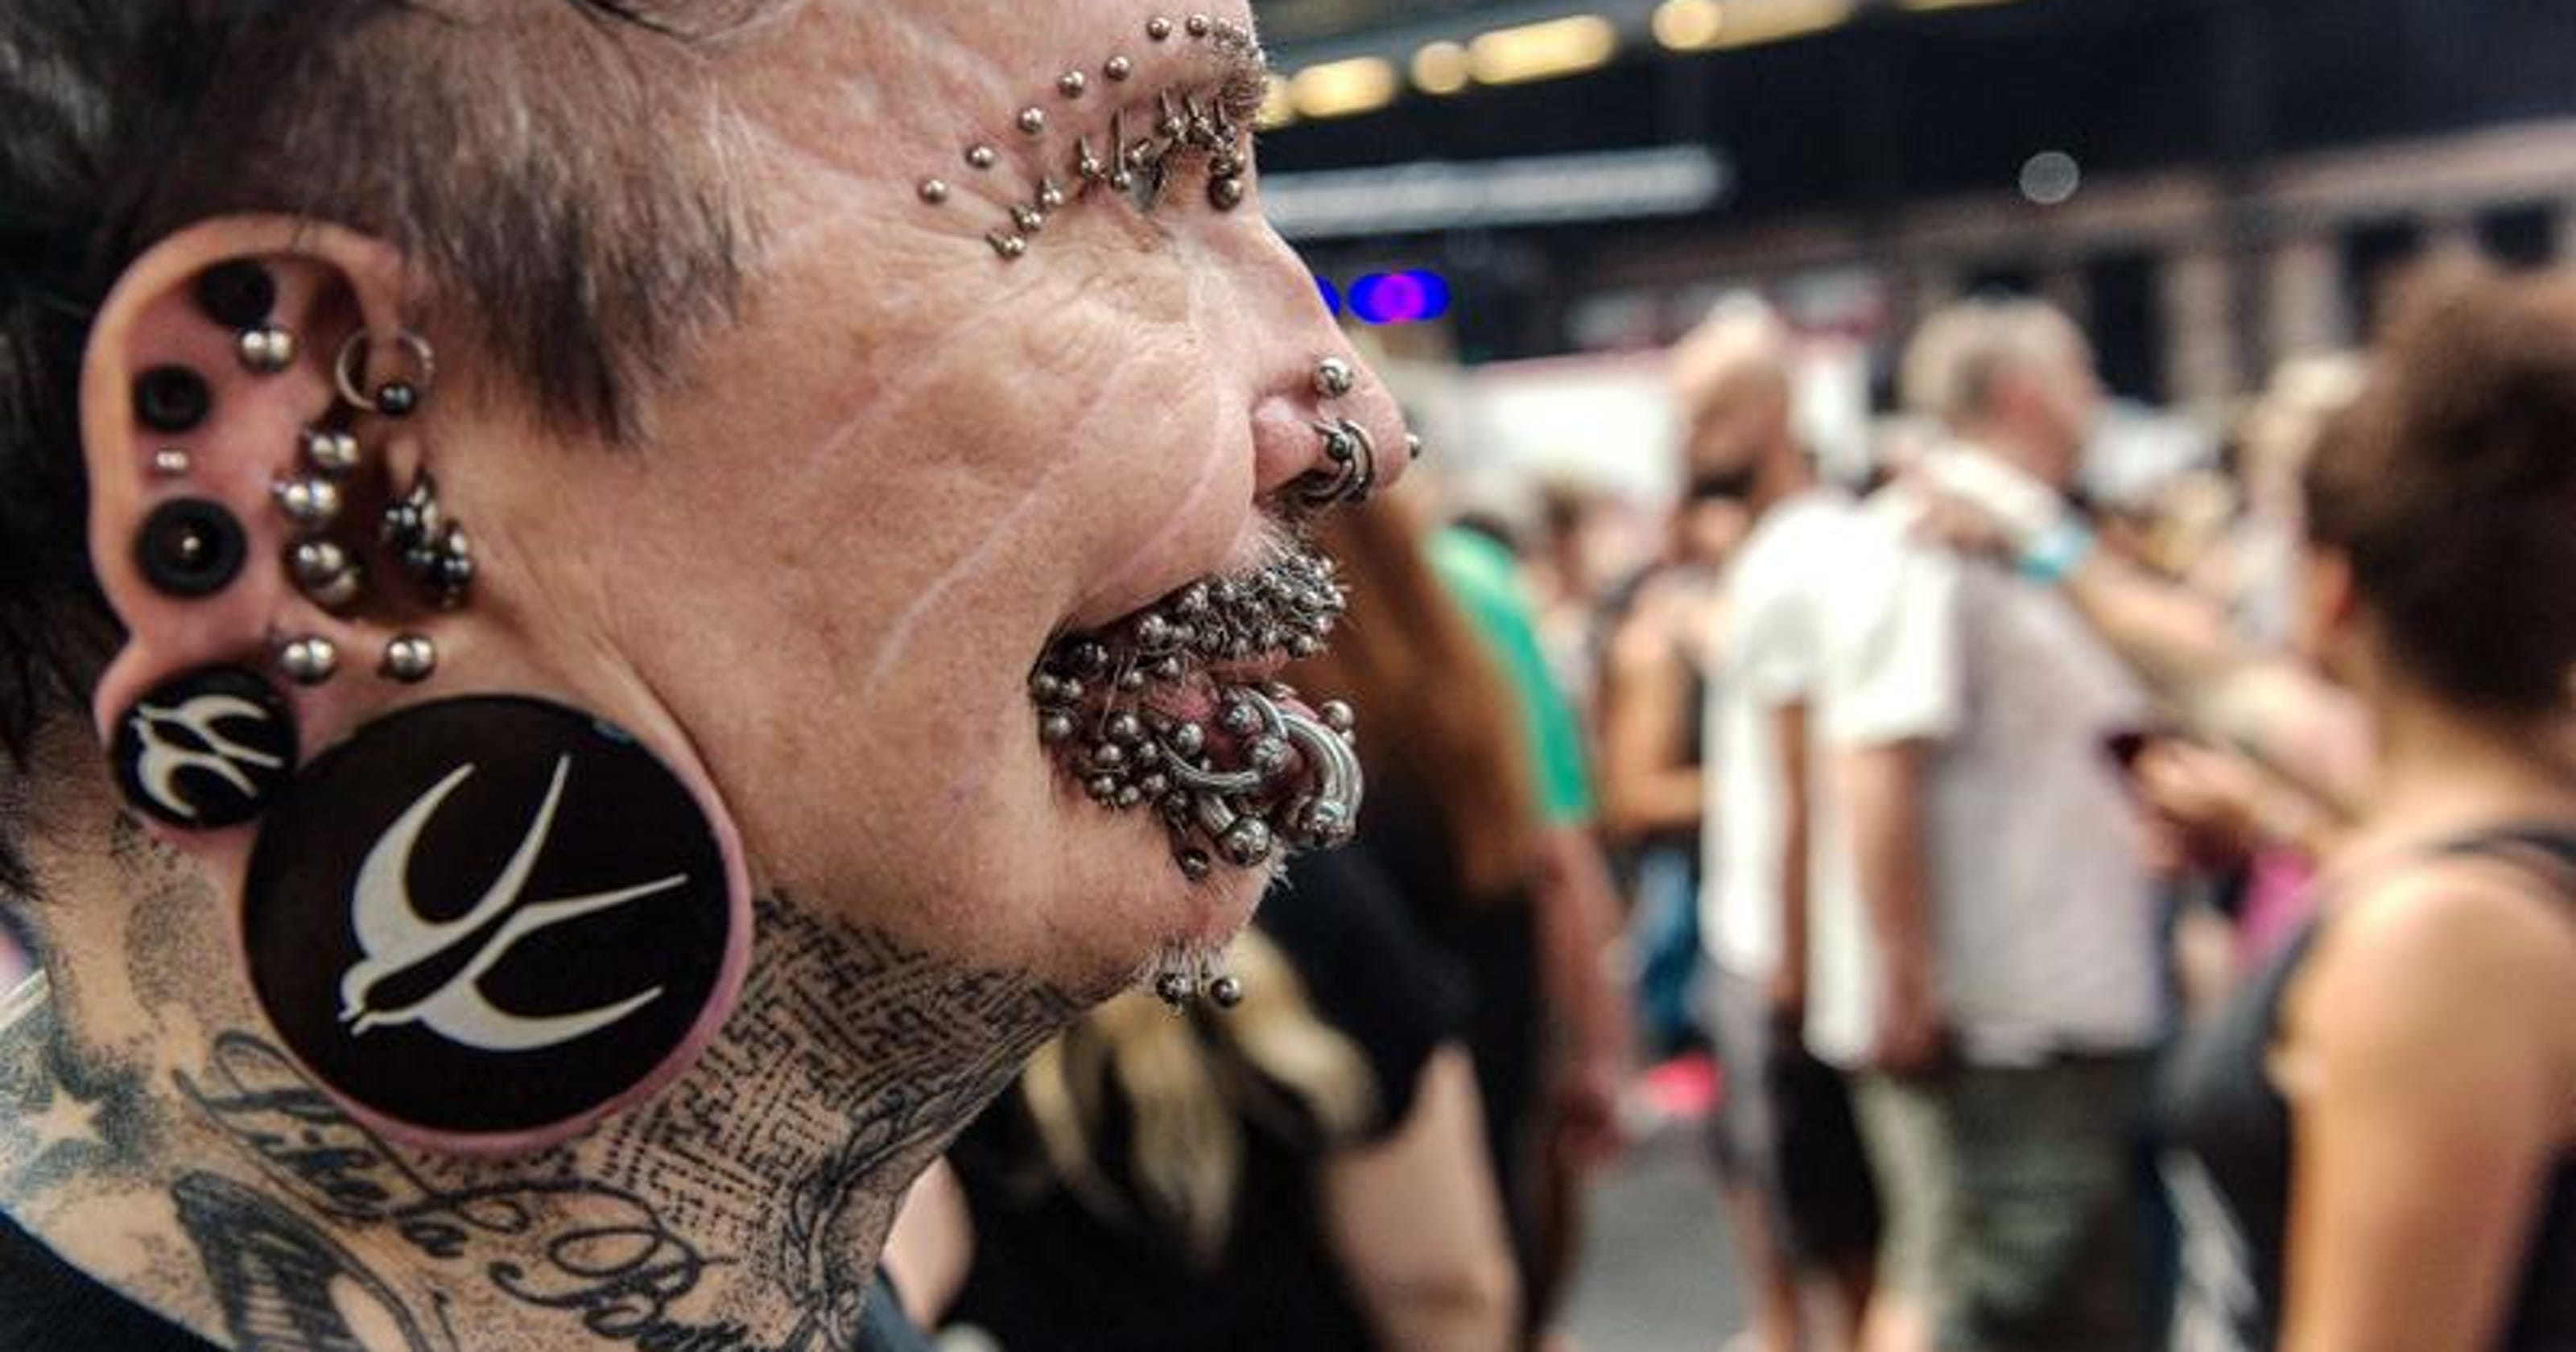 4e7b0973b German man with more than 100 face piercings denied entry to Dubai